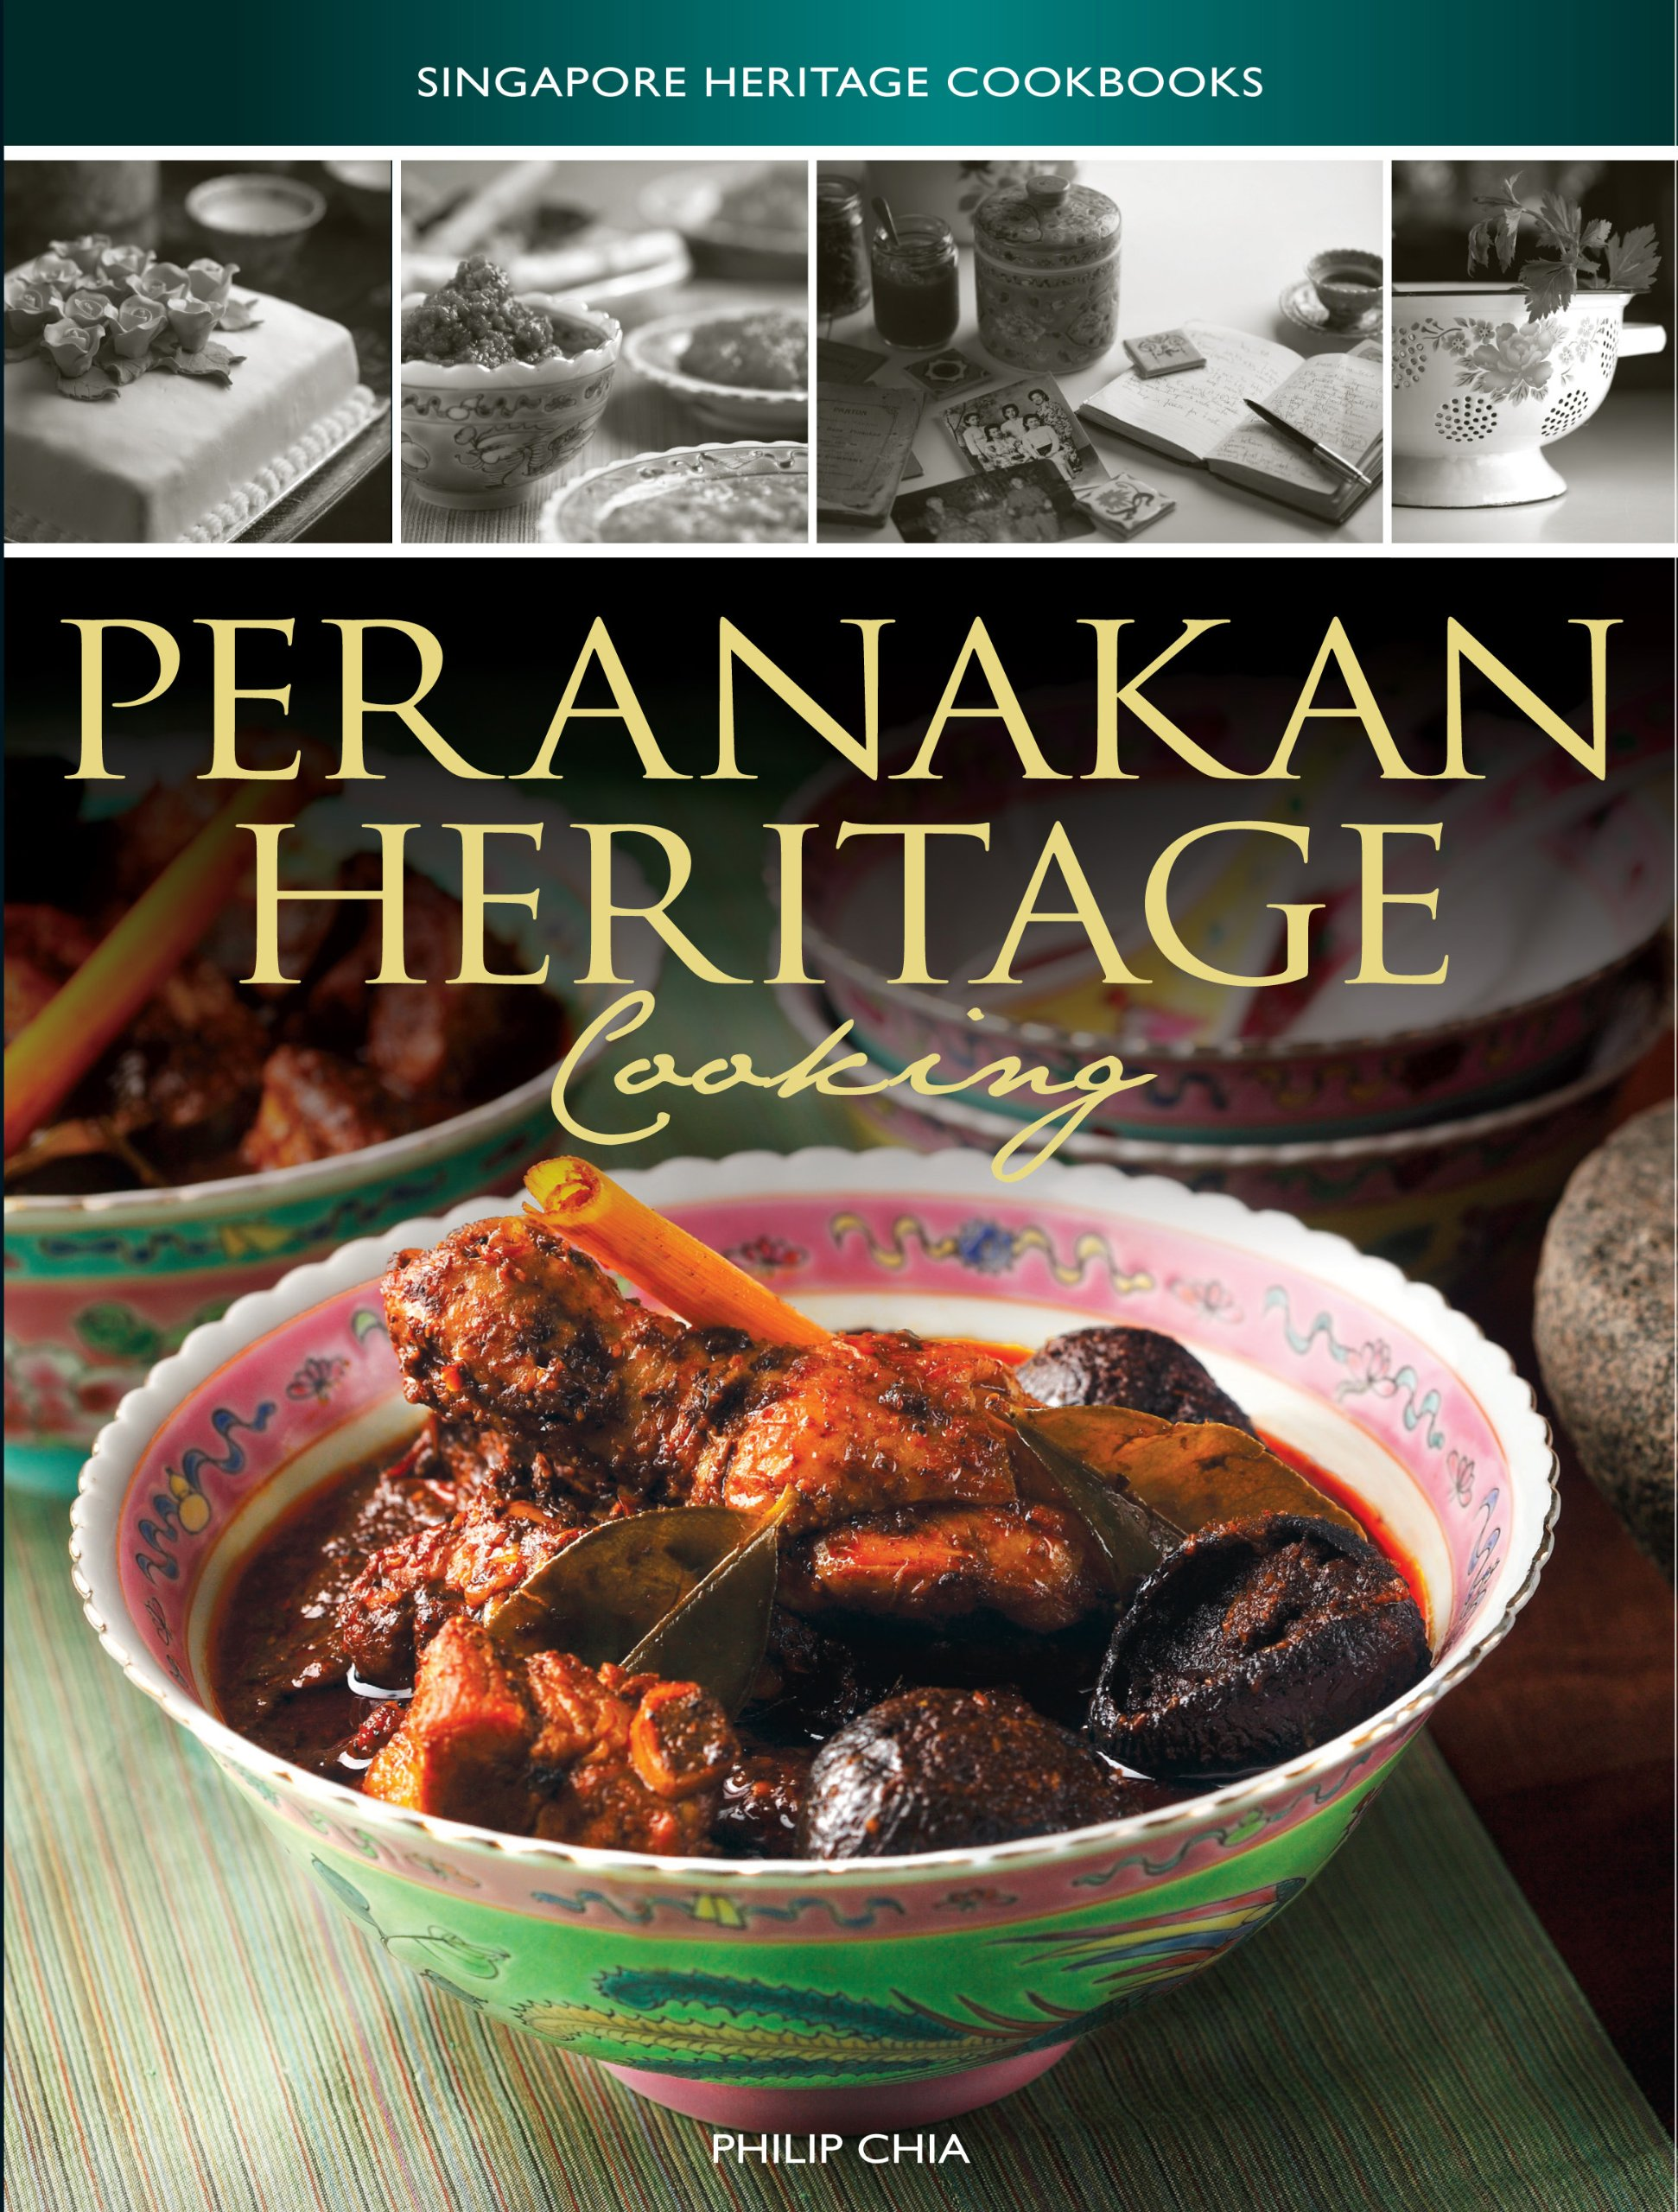 Peranakan heritage cooking singapore heritage cooking philip chia peranakan heritage cooking singapore heritage cooking philip chia 9789814346474 amazon books forumfinder Images